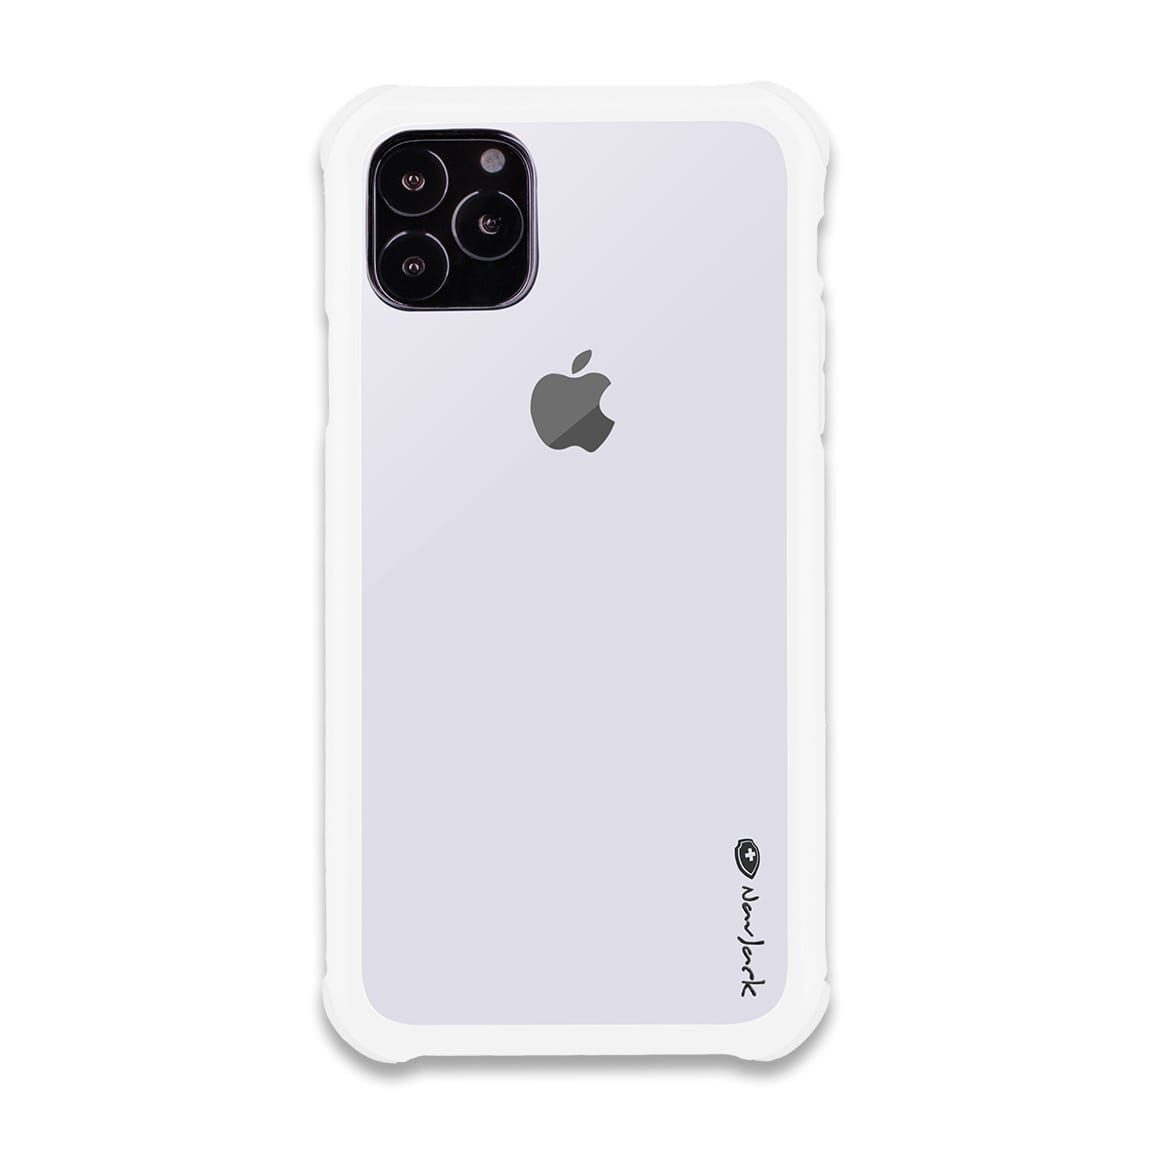 NavJack Germproof Series - iPhone 11 Pro Max Antibacterial and Antiviral Phone Case